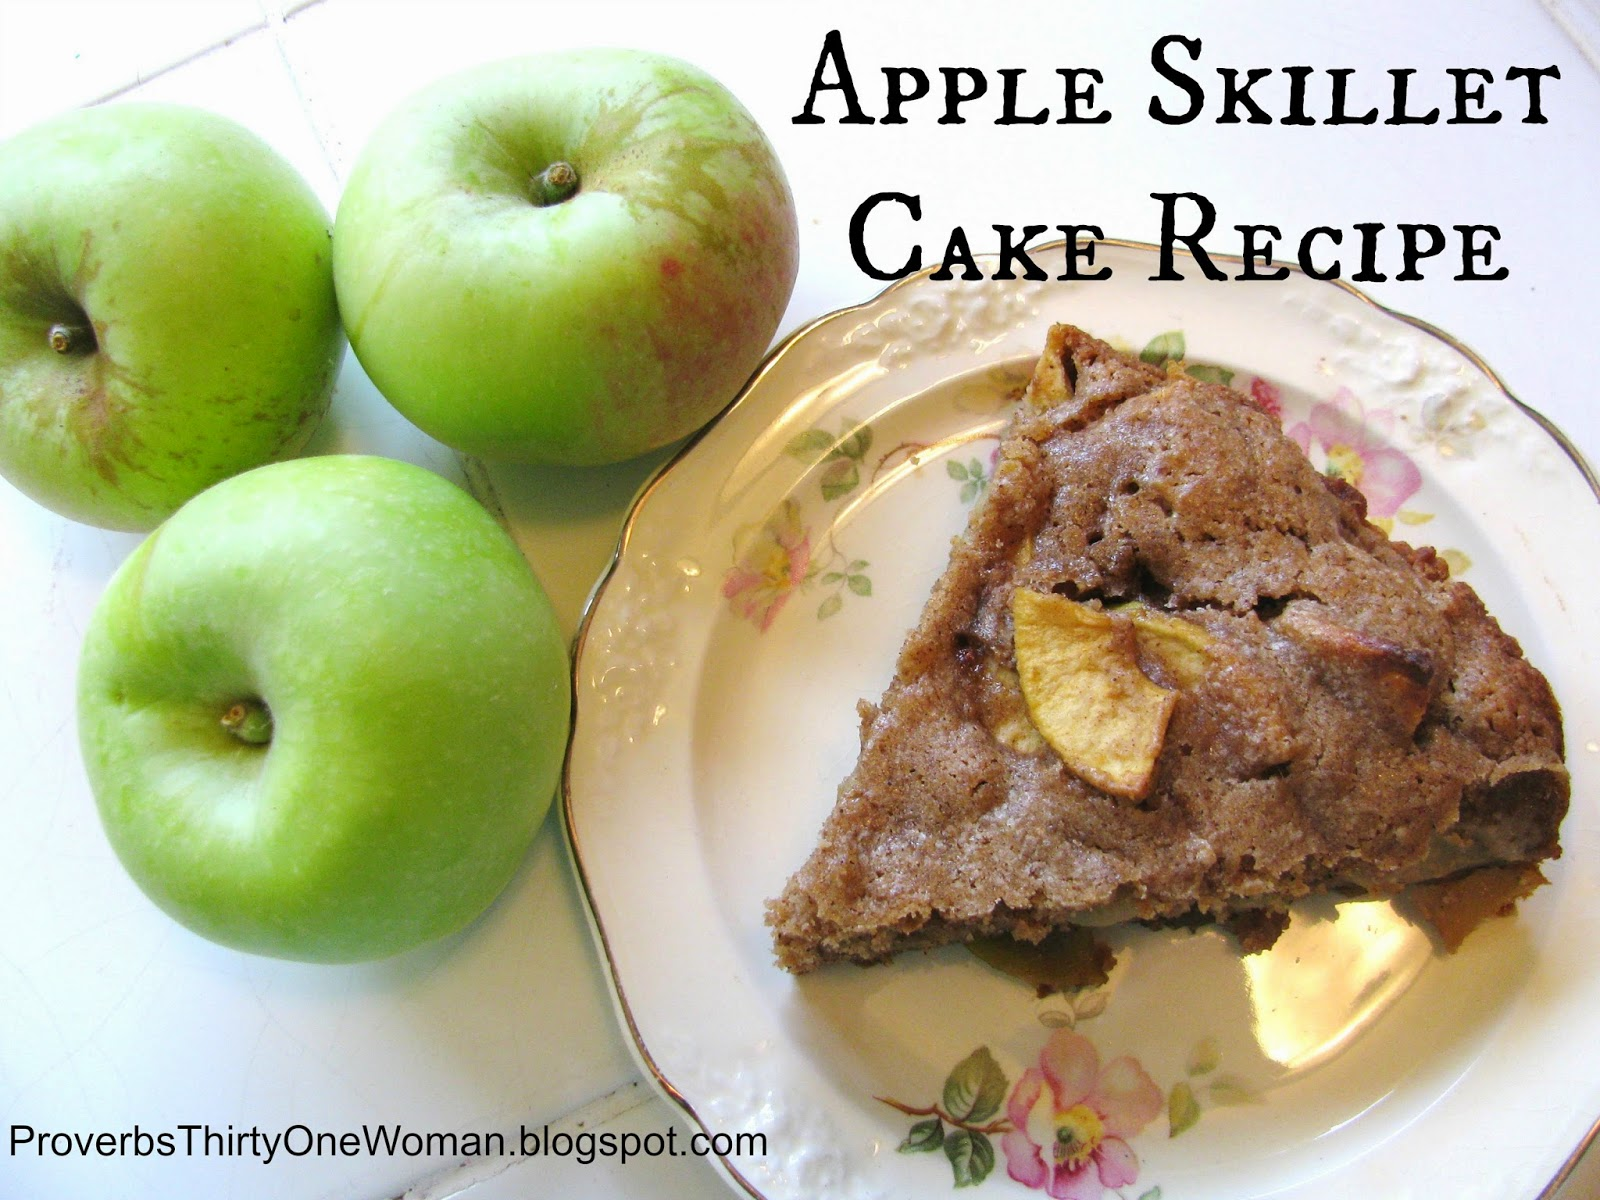 Apple Skillet Cake Recipe | Proverbs 31 Woman